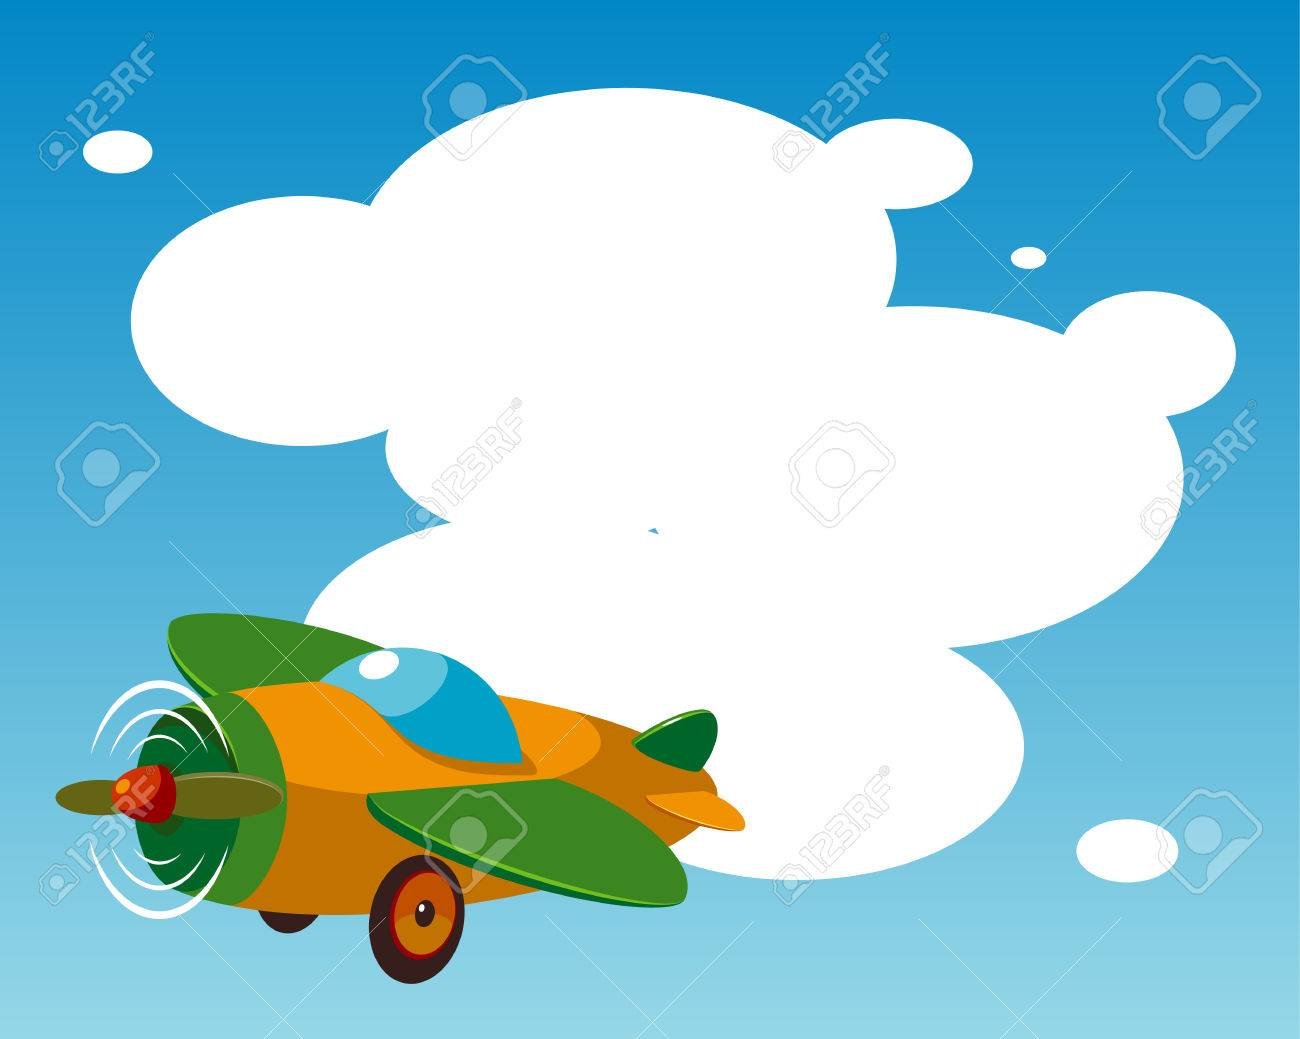 Background with plane. Stock Vector - 6298307